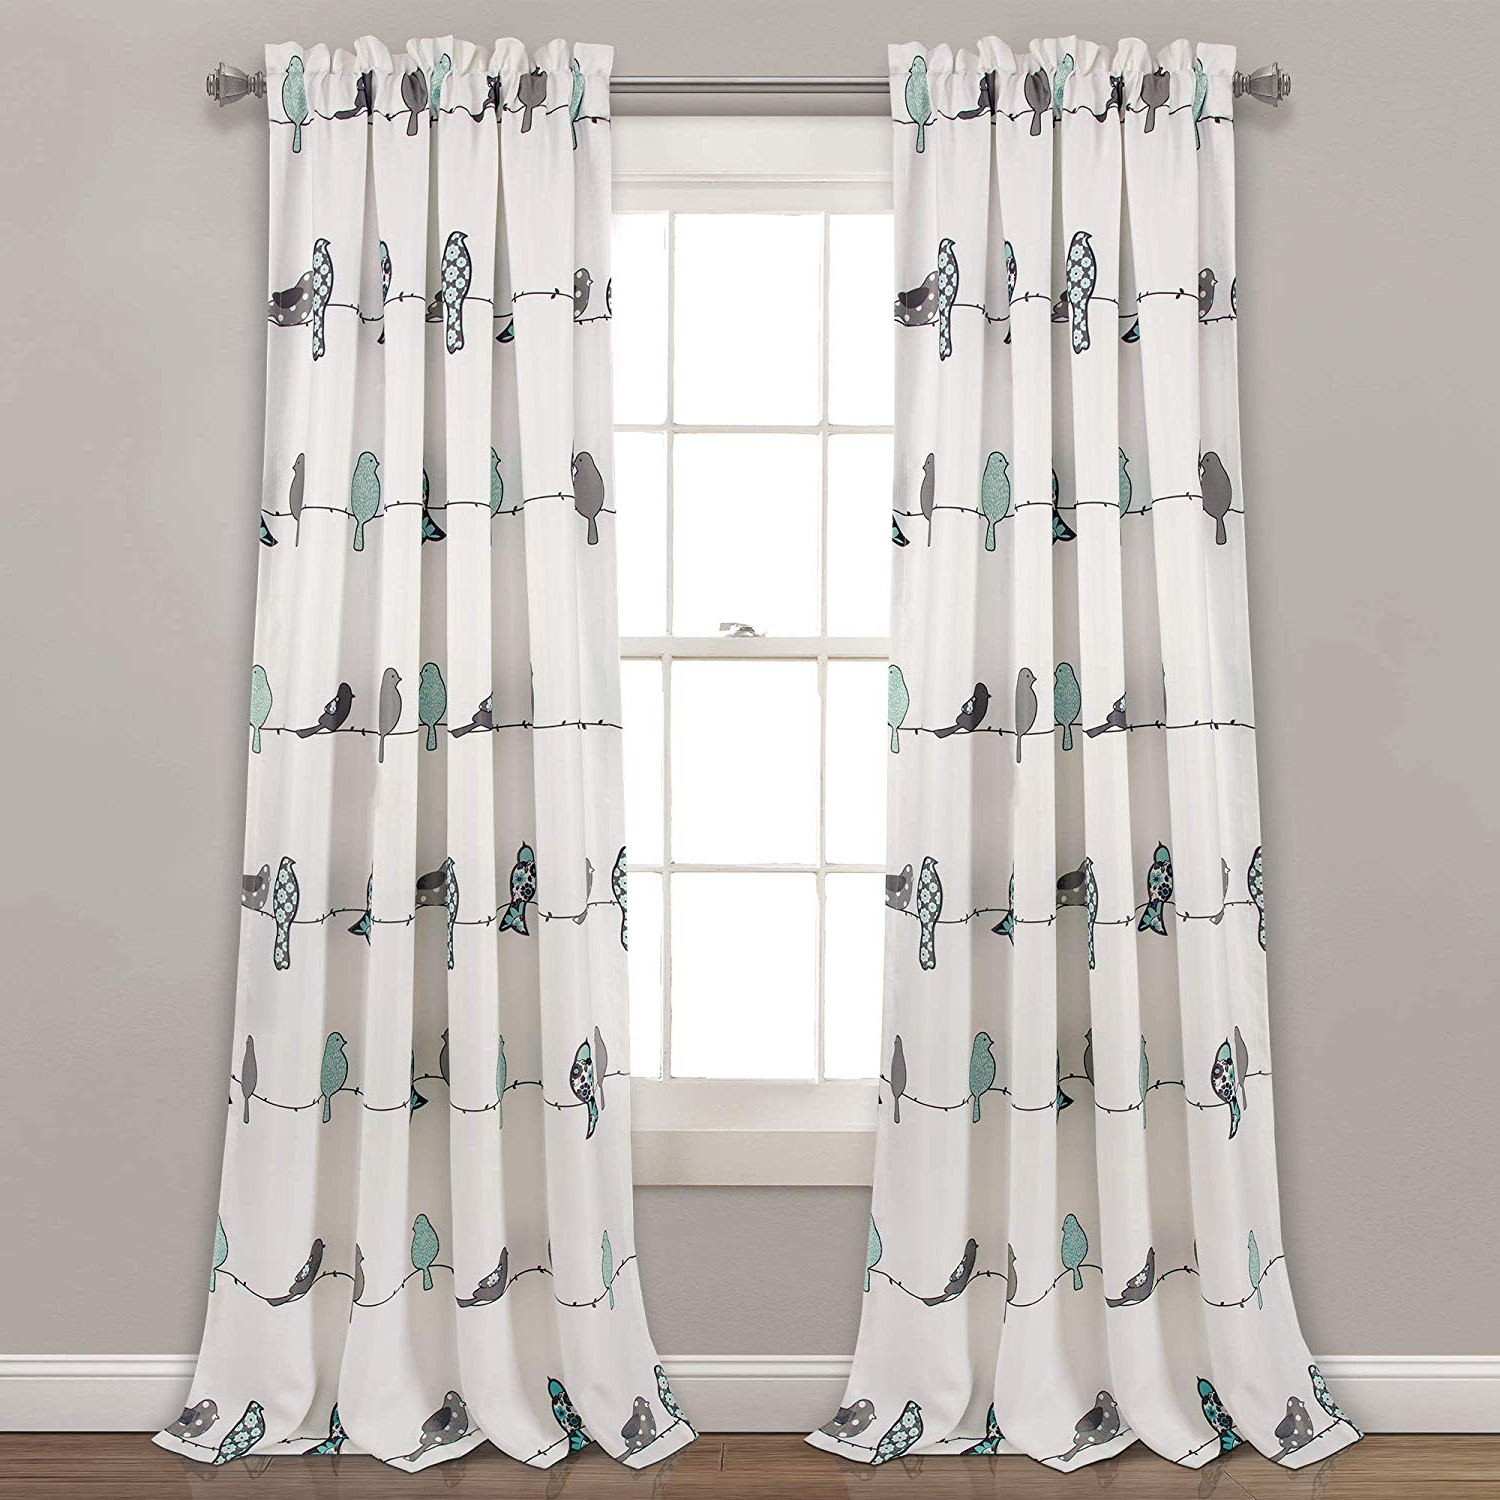 "Newest Rowley Birds Room Darkening Curtain Panel Pairs Intended For Lush Decor Rowley Birds Room Darkening Window Curtain Panel Pair, 95"" X 52"" + 2"" Header, Blue & Gray, 95"" L (View 3 of 20)"